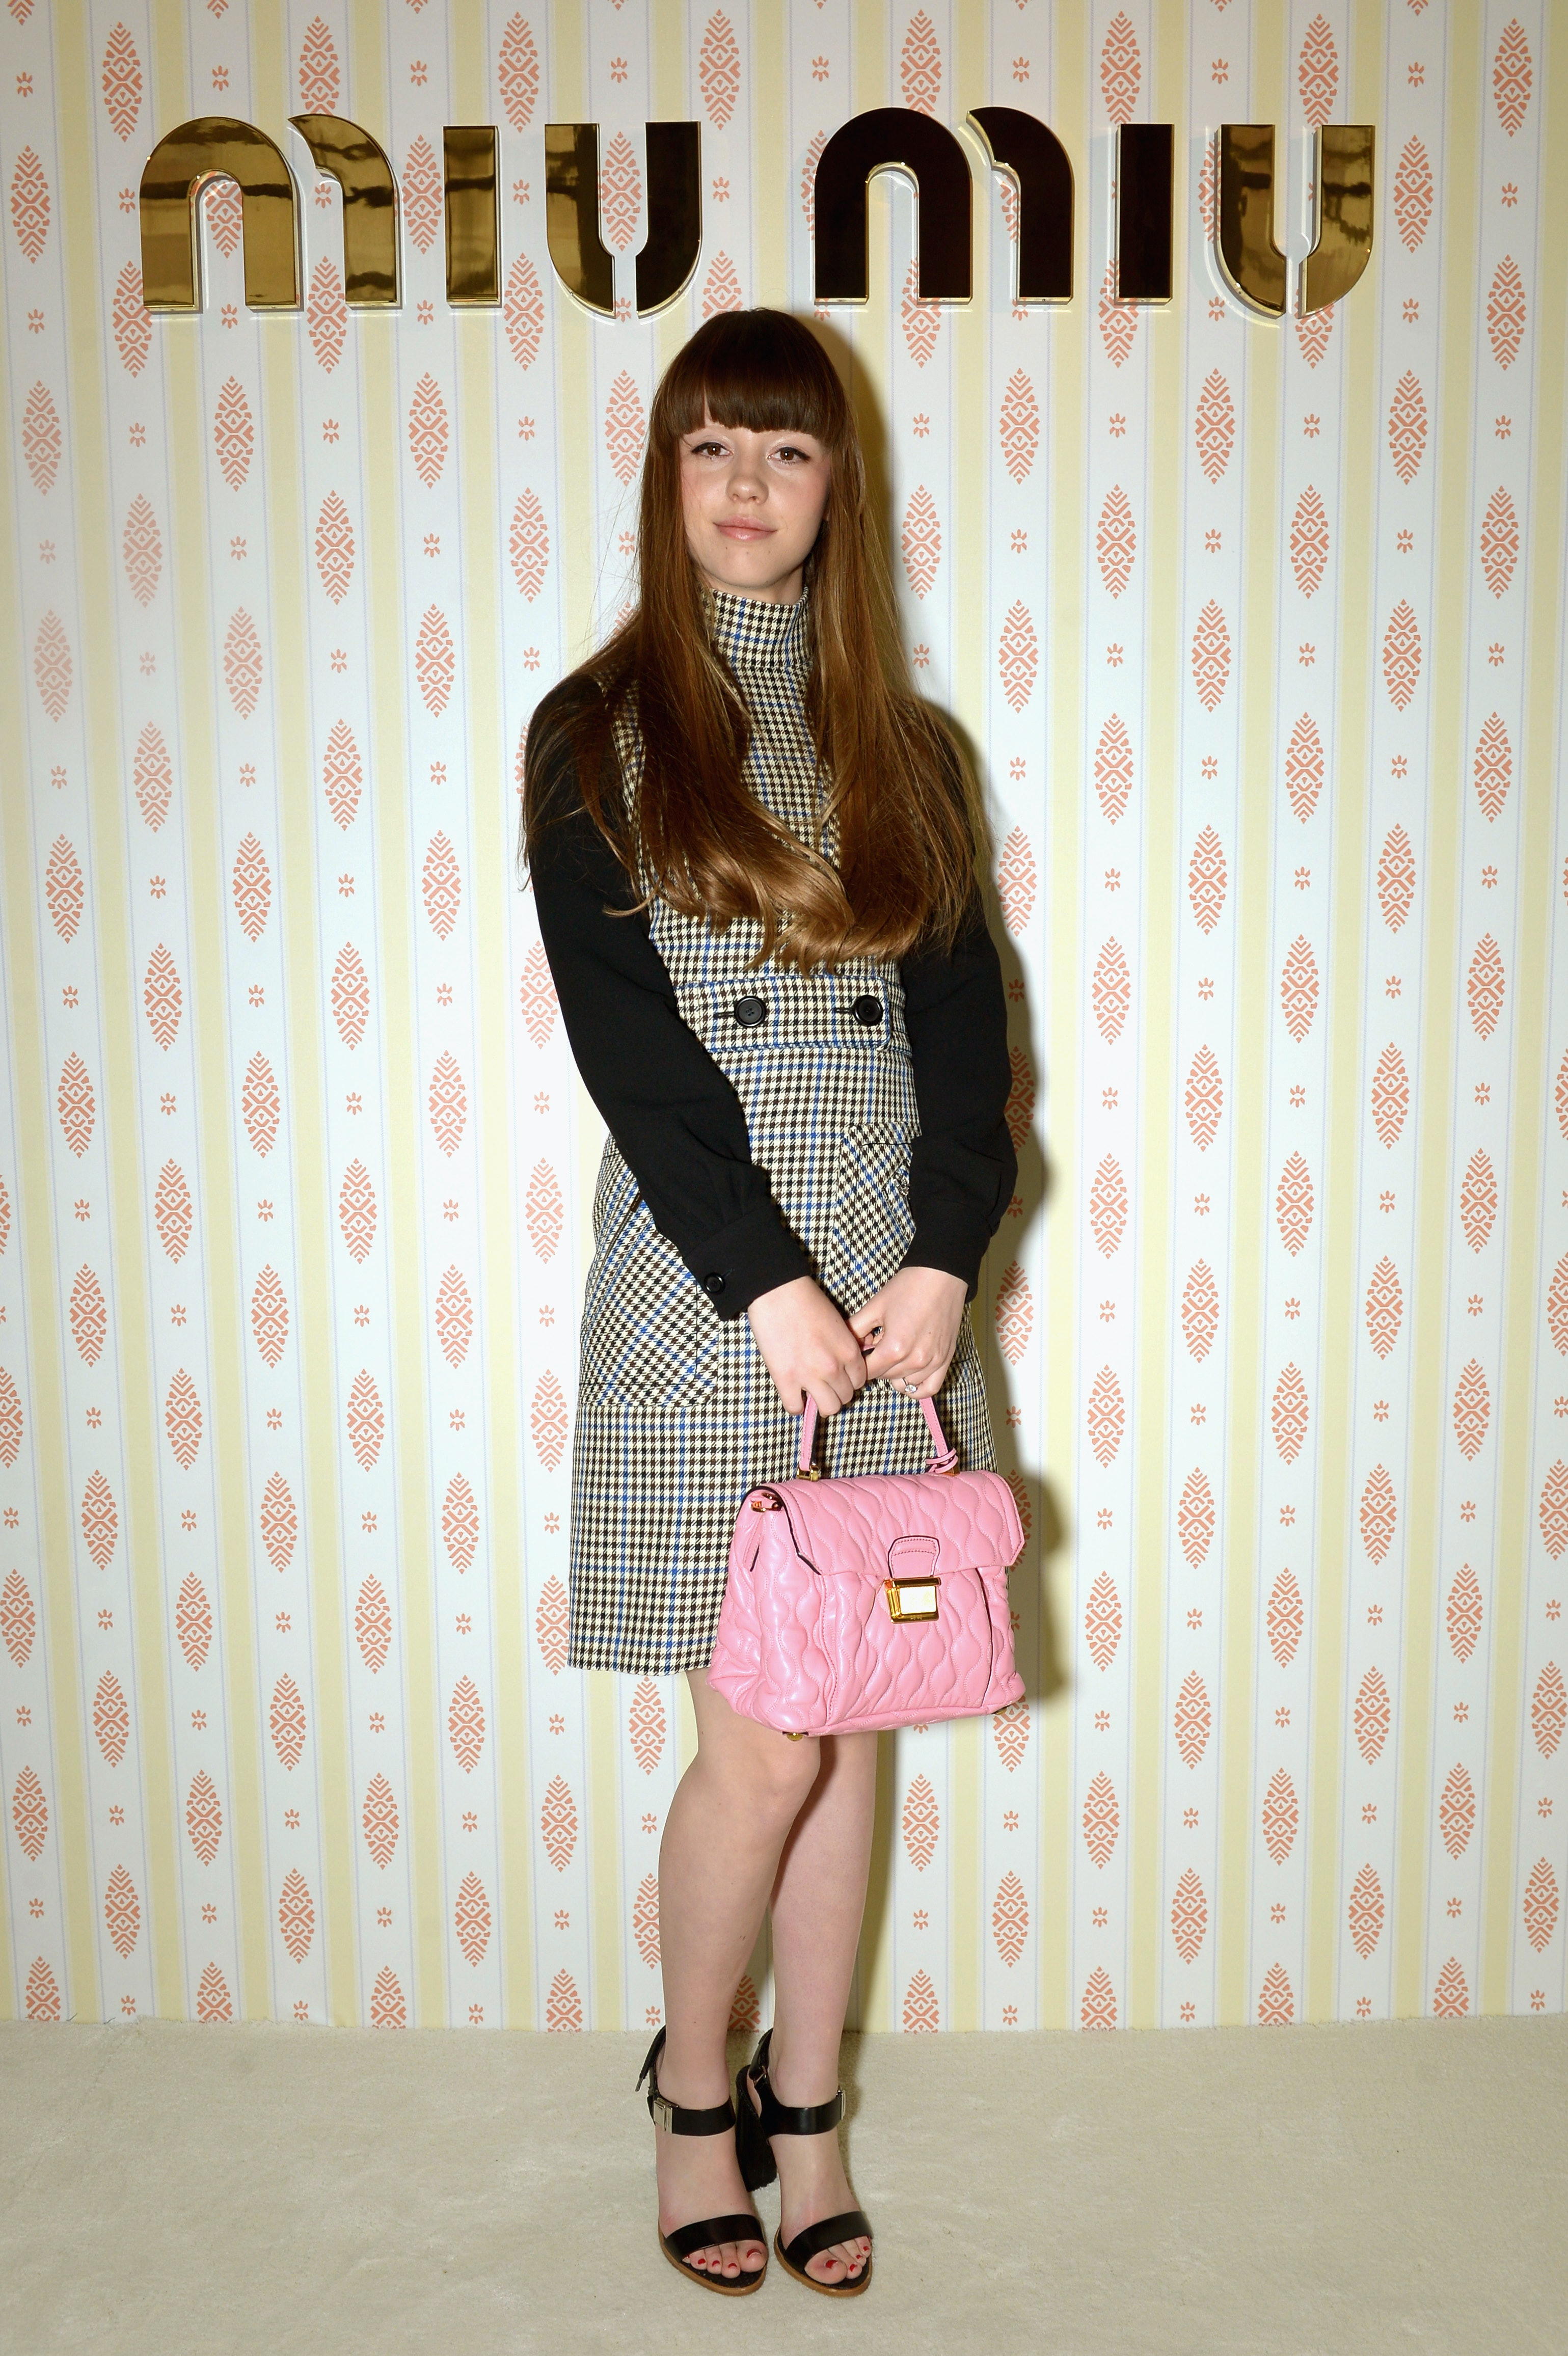 0eea68b32caa Miu Miu Ad Banned By UK Advertising Standards Authority For Appearing To  Sexualize A Minor